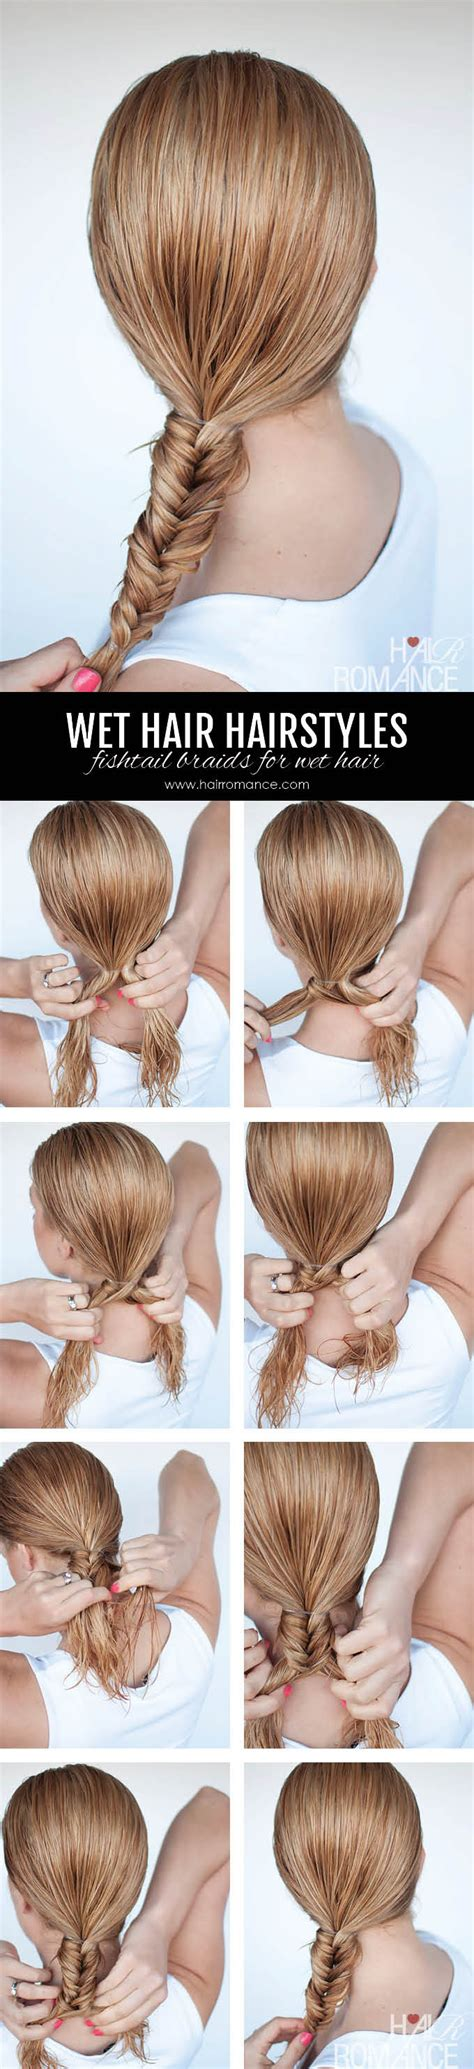 hairstyles for black wet hair hairstyles for wet hair 3 simple braid tutorials you can